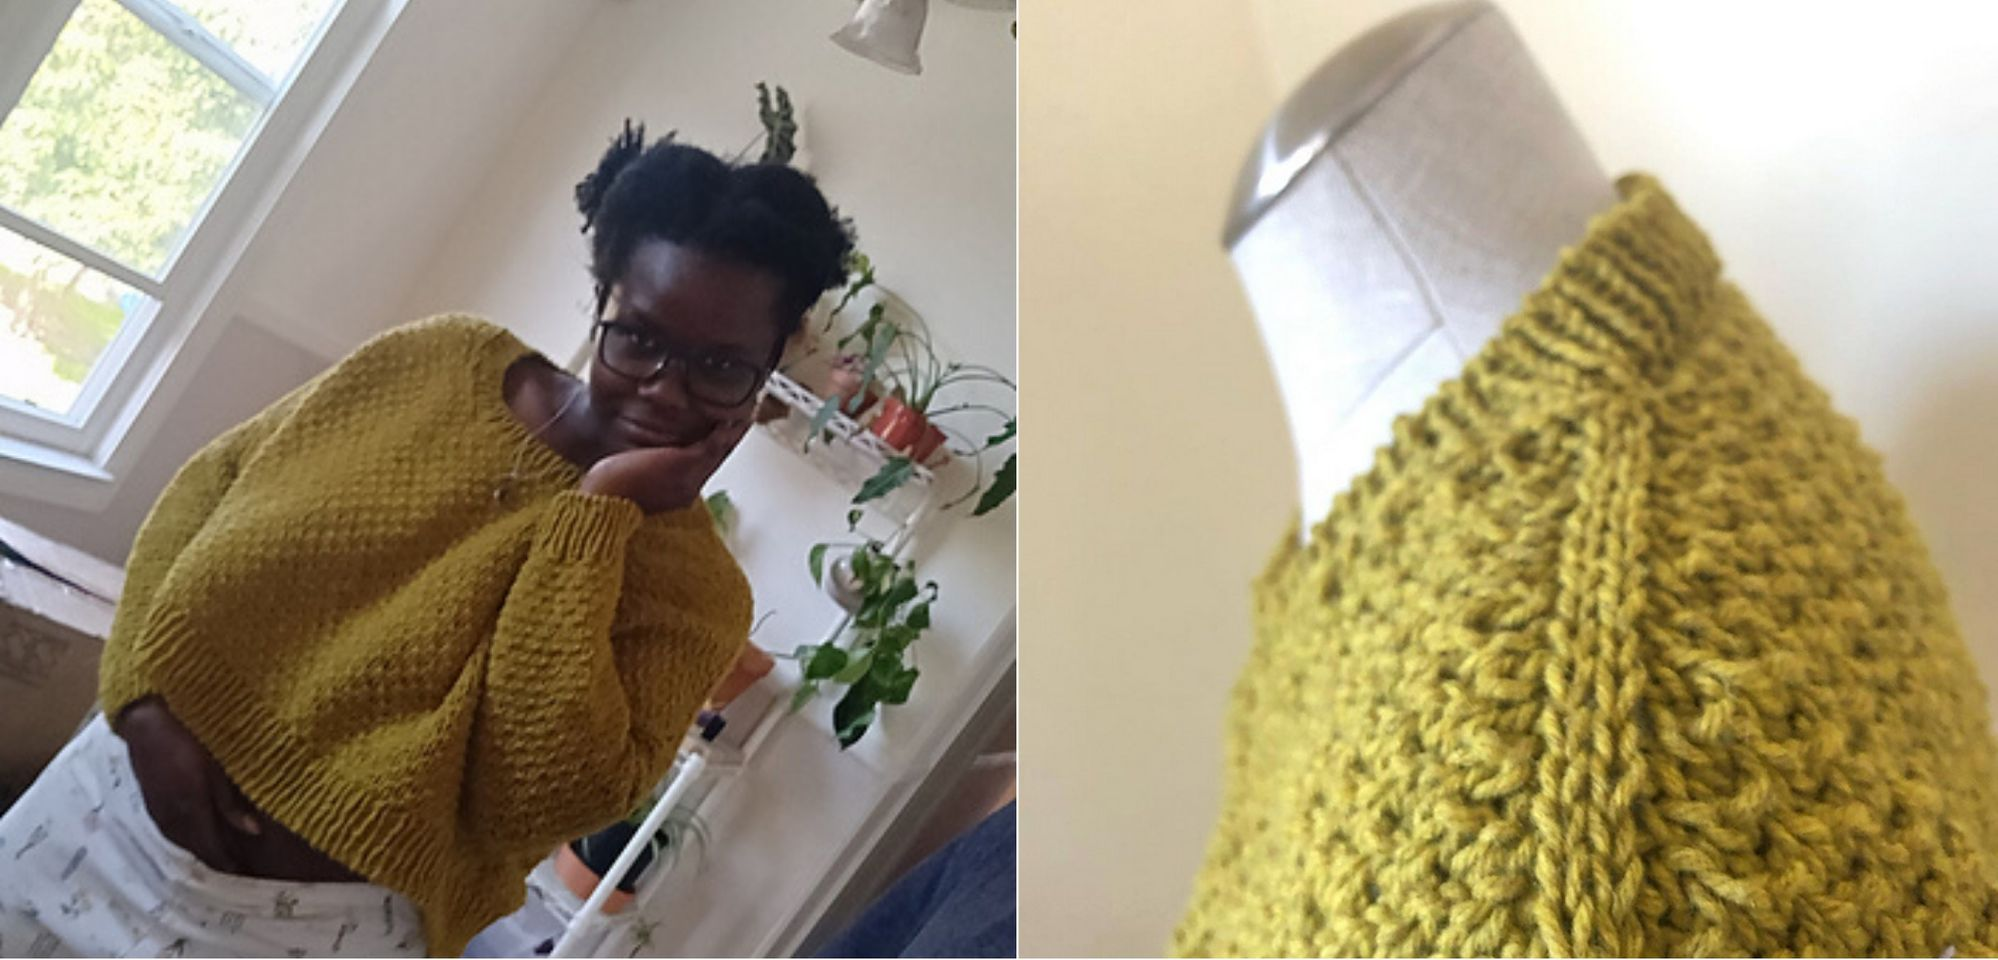 Image of a black skinned woman with dark hair in bunches. She is wearing a cropped yellow sweater over casual pants. The photo is taken at an angle and she is smiling over her hand. Photo on right of the same yellow sweater on a dress form, the photo is a close up of the shoulder detail.